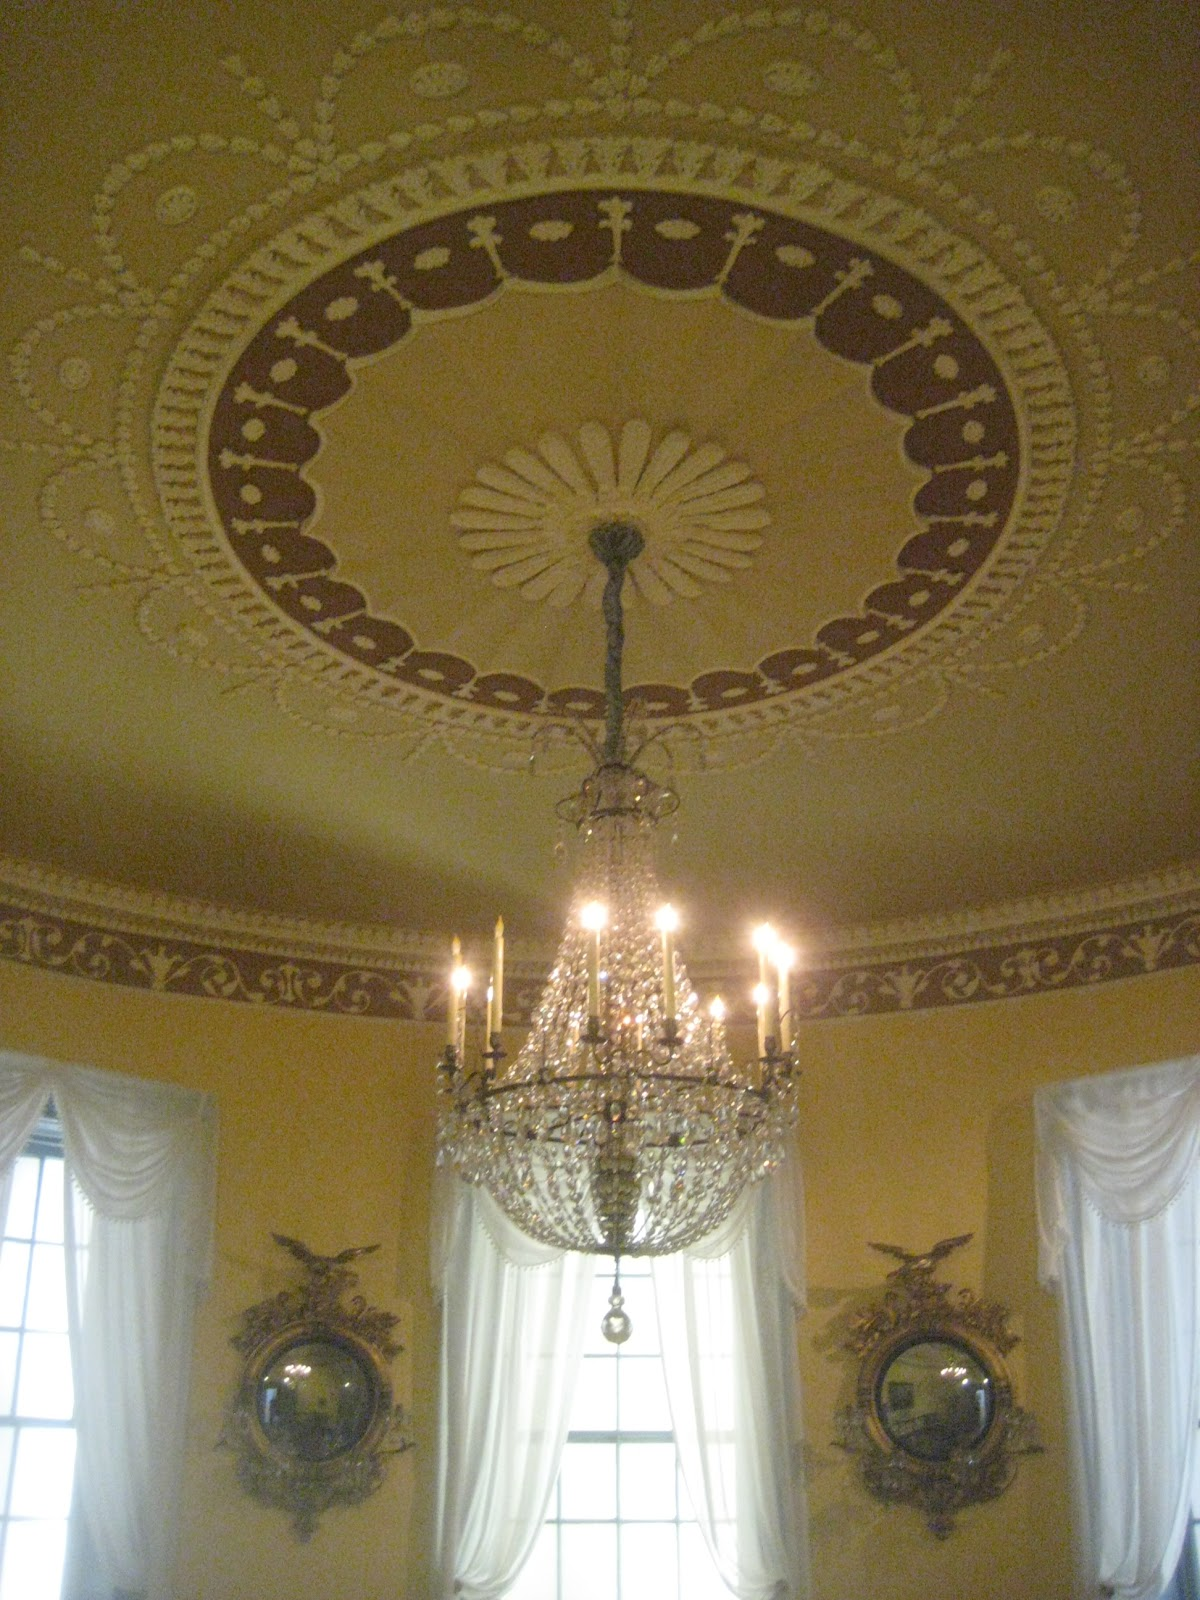 Southern folk artist antiques dealercollector oval federal room the plaster ceiling medallion is in the shape of an oval fluted tent of canopy encircled by applied ornament of palmettes bellflowers swages arubaitofo Image collections